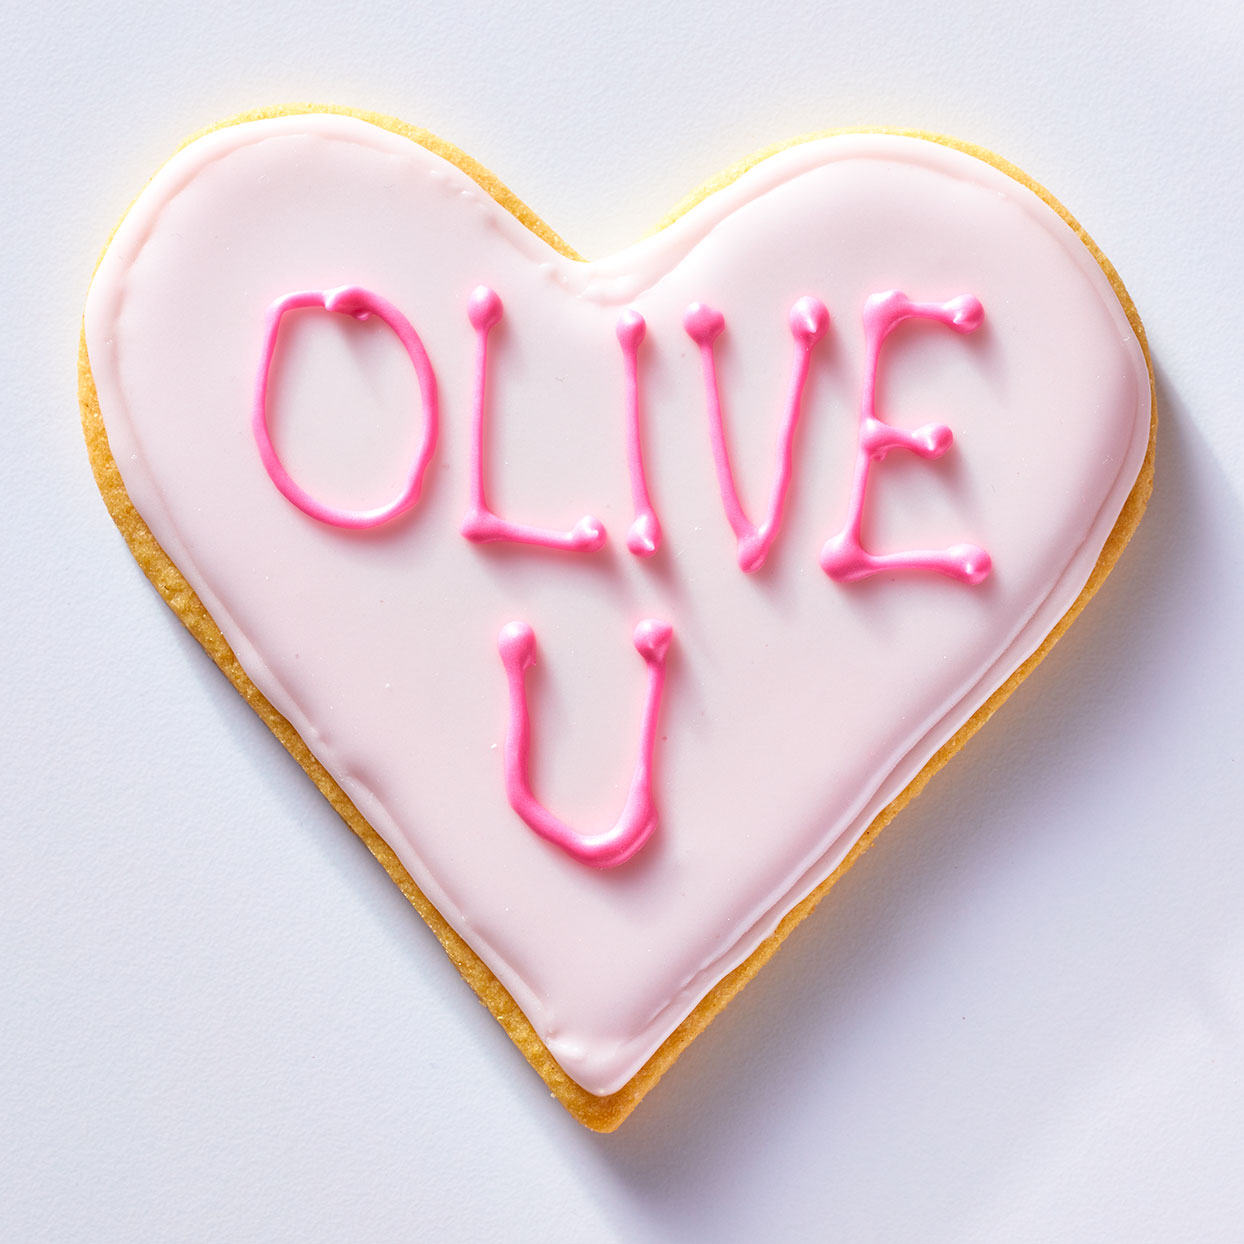 Olive U Conversation Heart Cookie